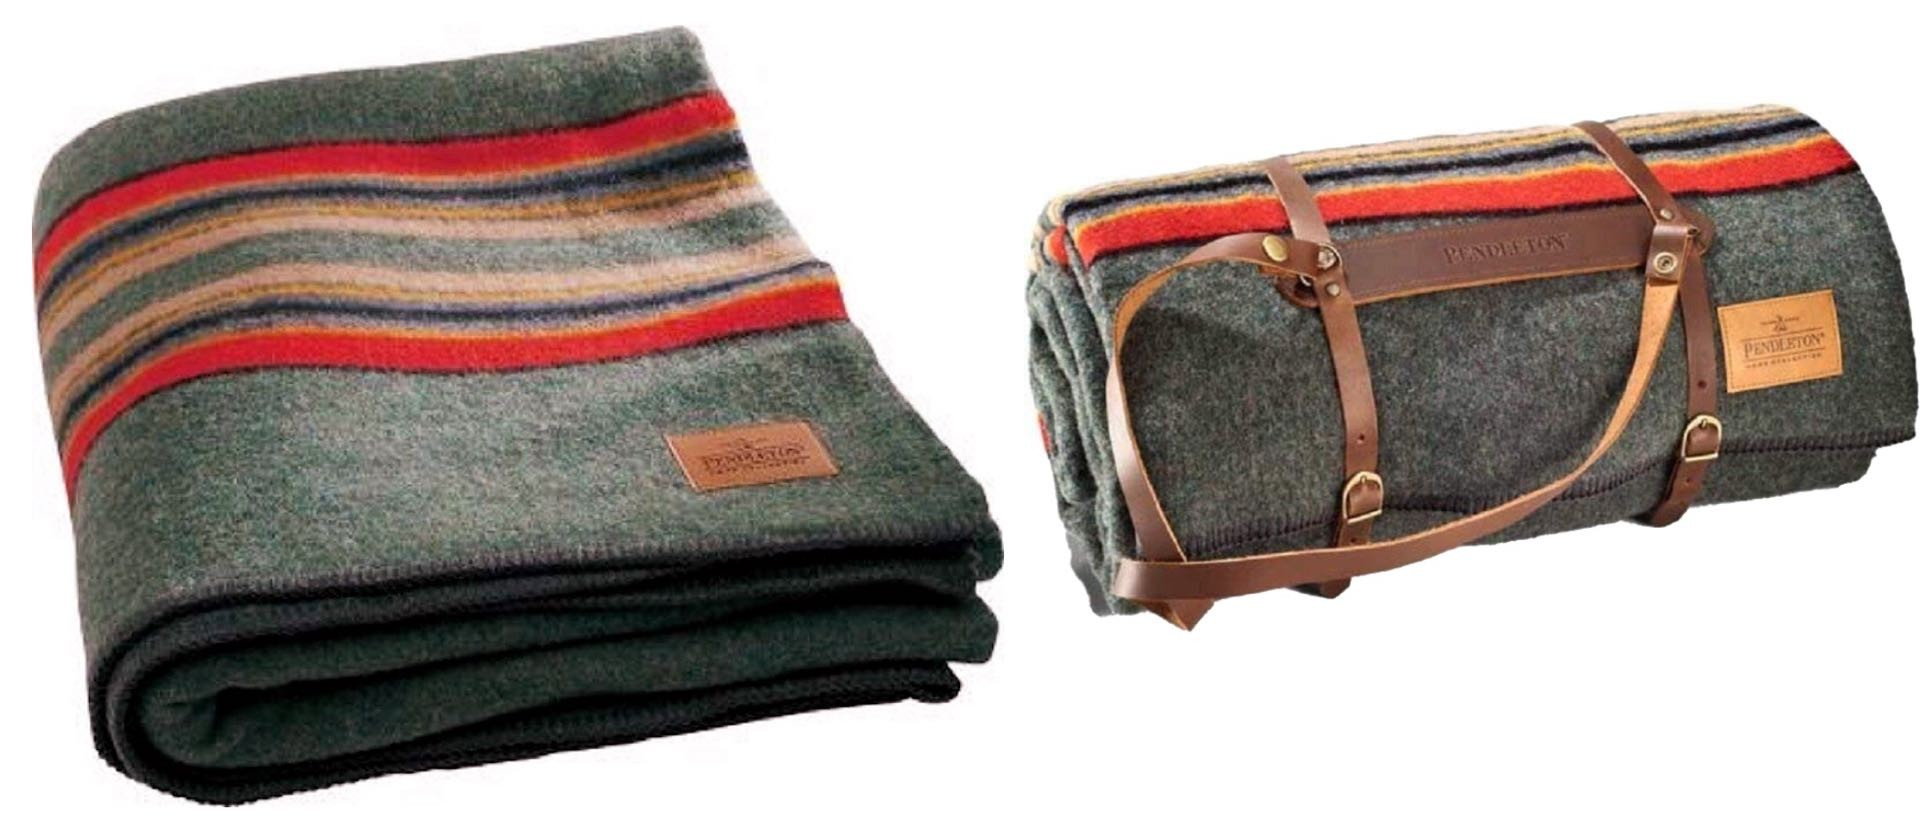 pendleton-twin-size-wool-camp-blanket-with-leather-carrier